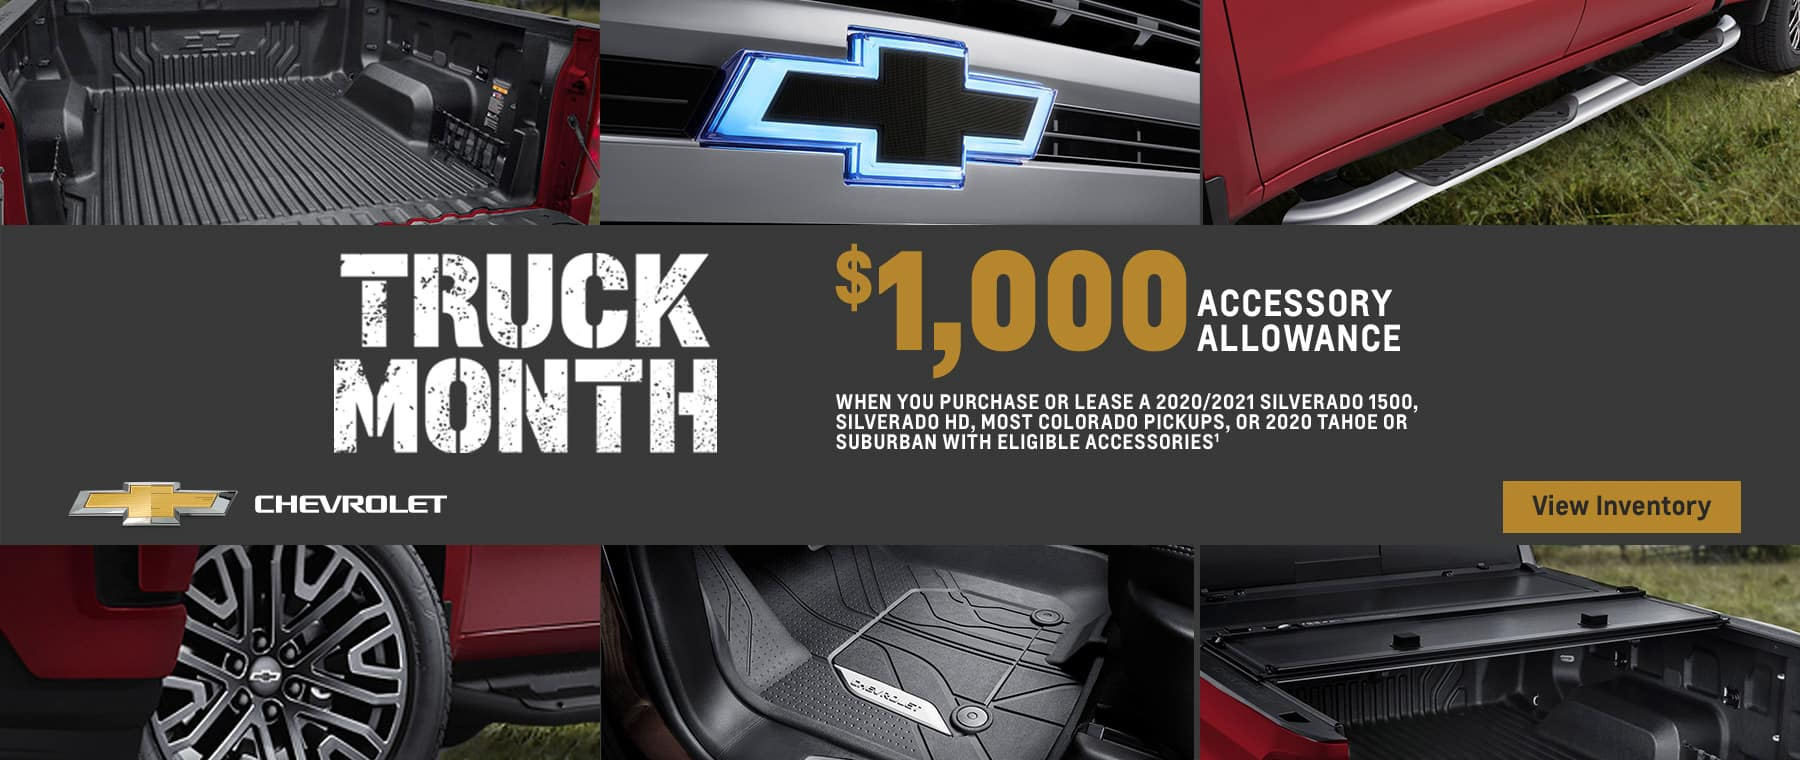 14_2020_OCTOBER_TRUCK MONTH ACCESSORIES_NATIONAL_1800x760(1)